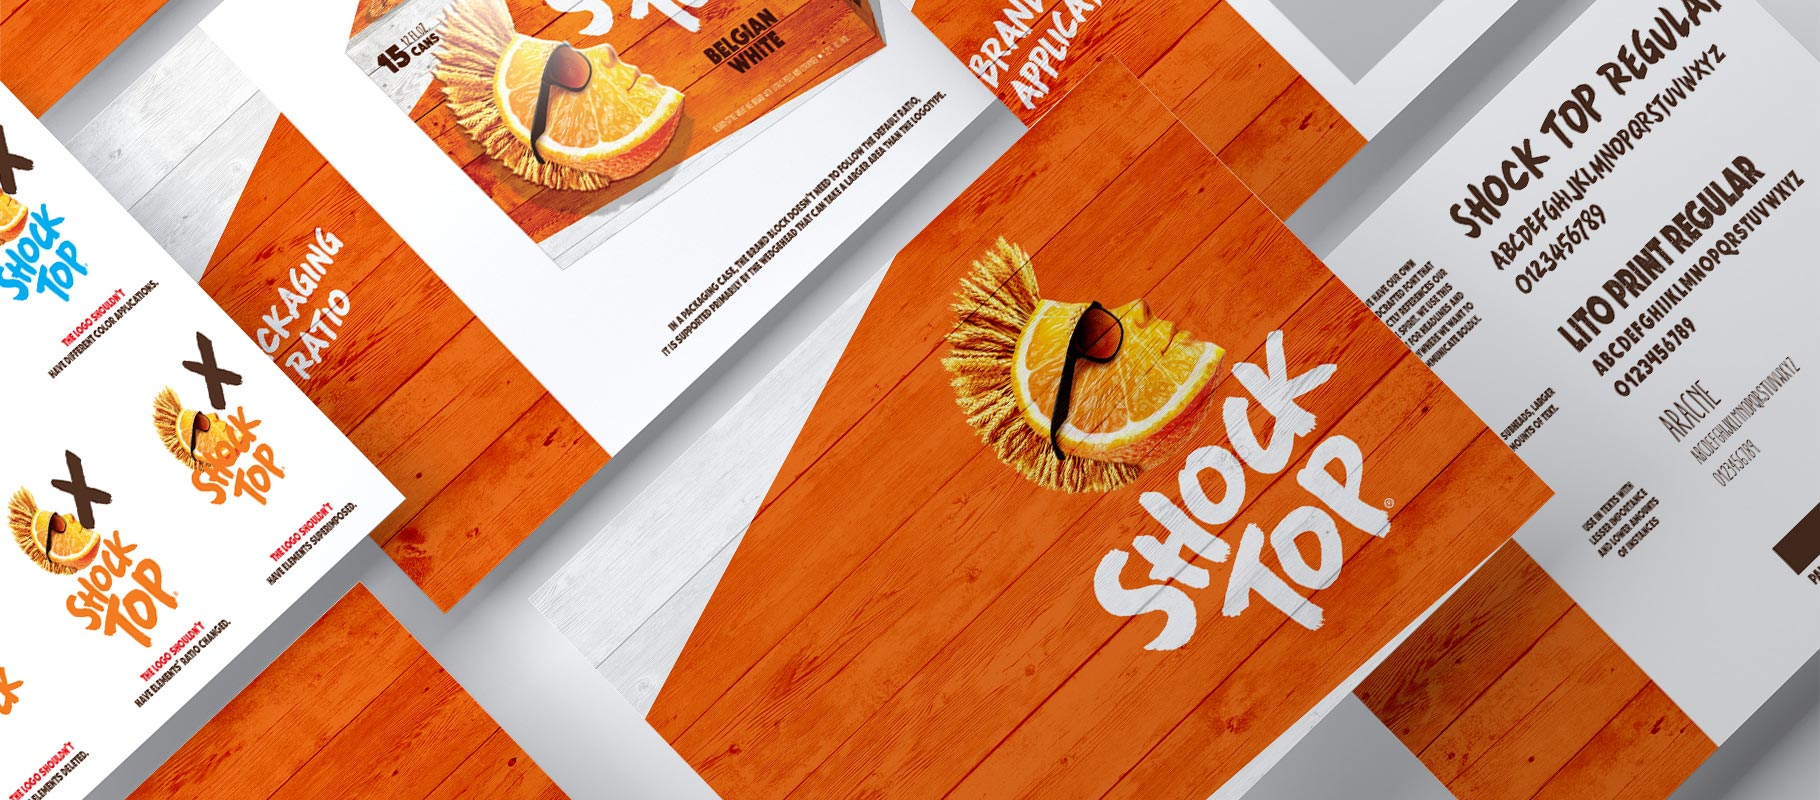 Shock Top 15-can package design